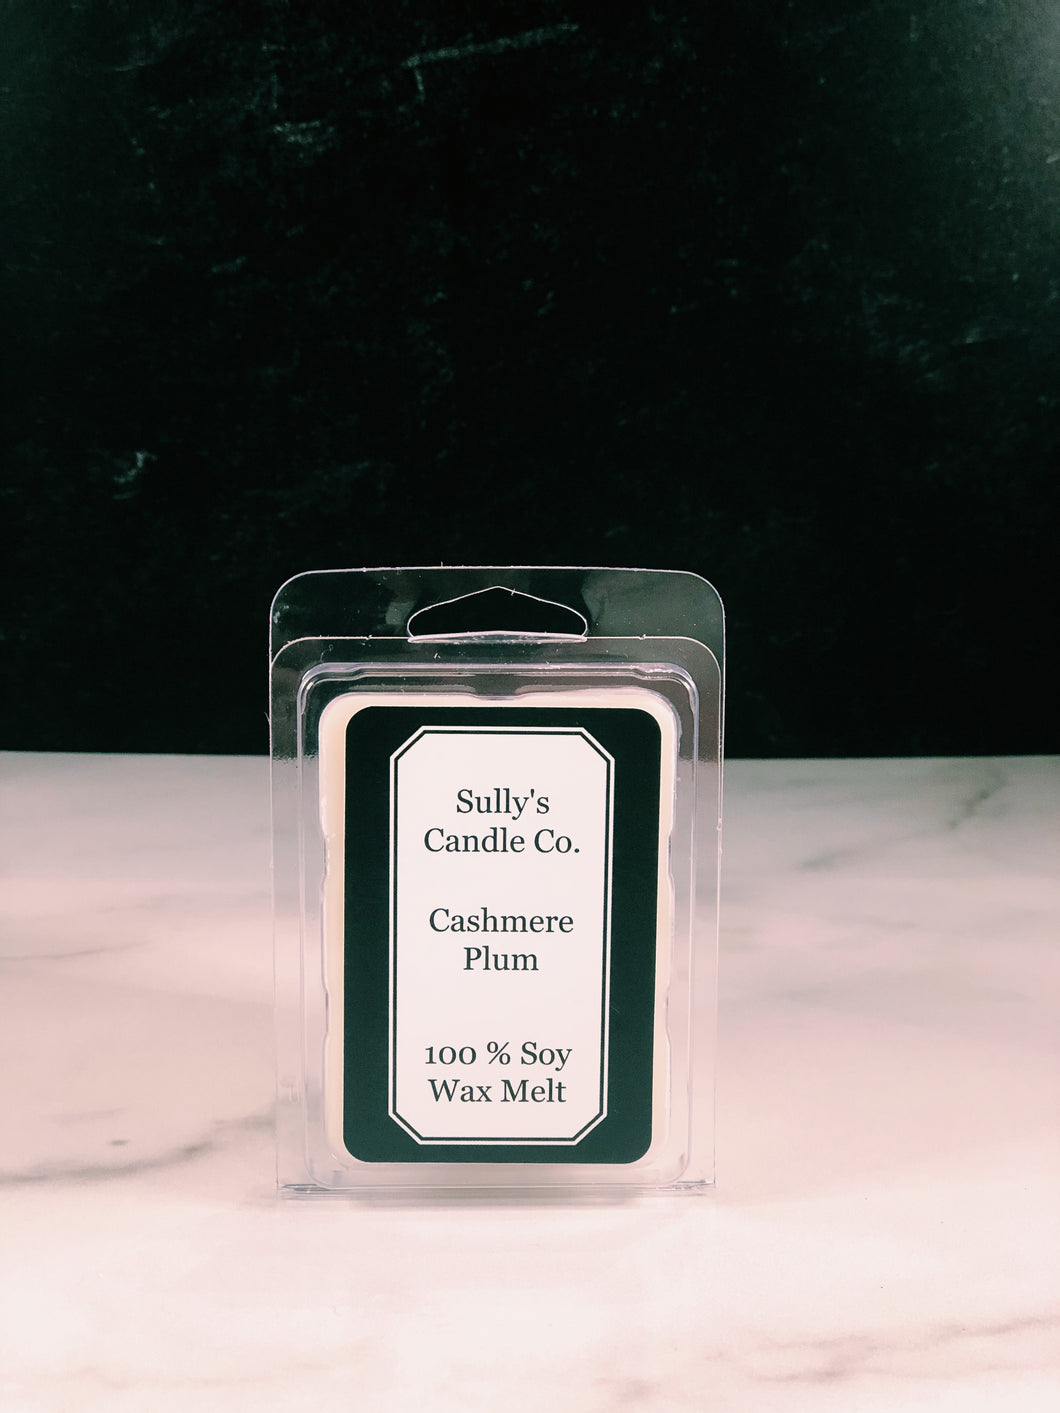 Cashmere Plum - 3oz Wax Melts - Sully's Candle Co.